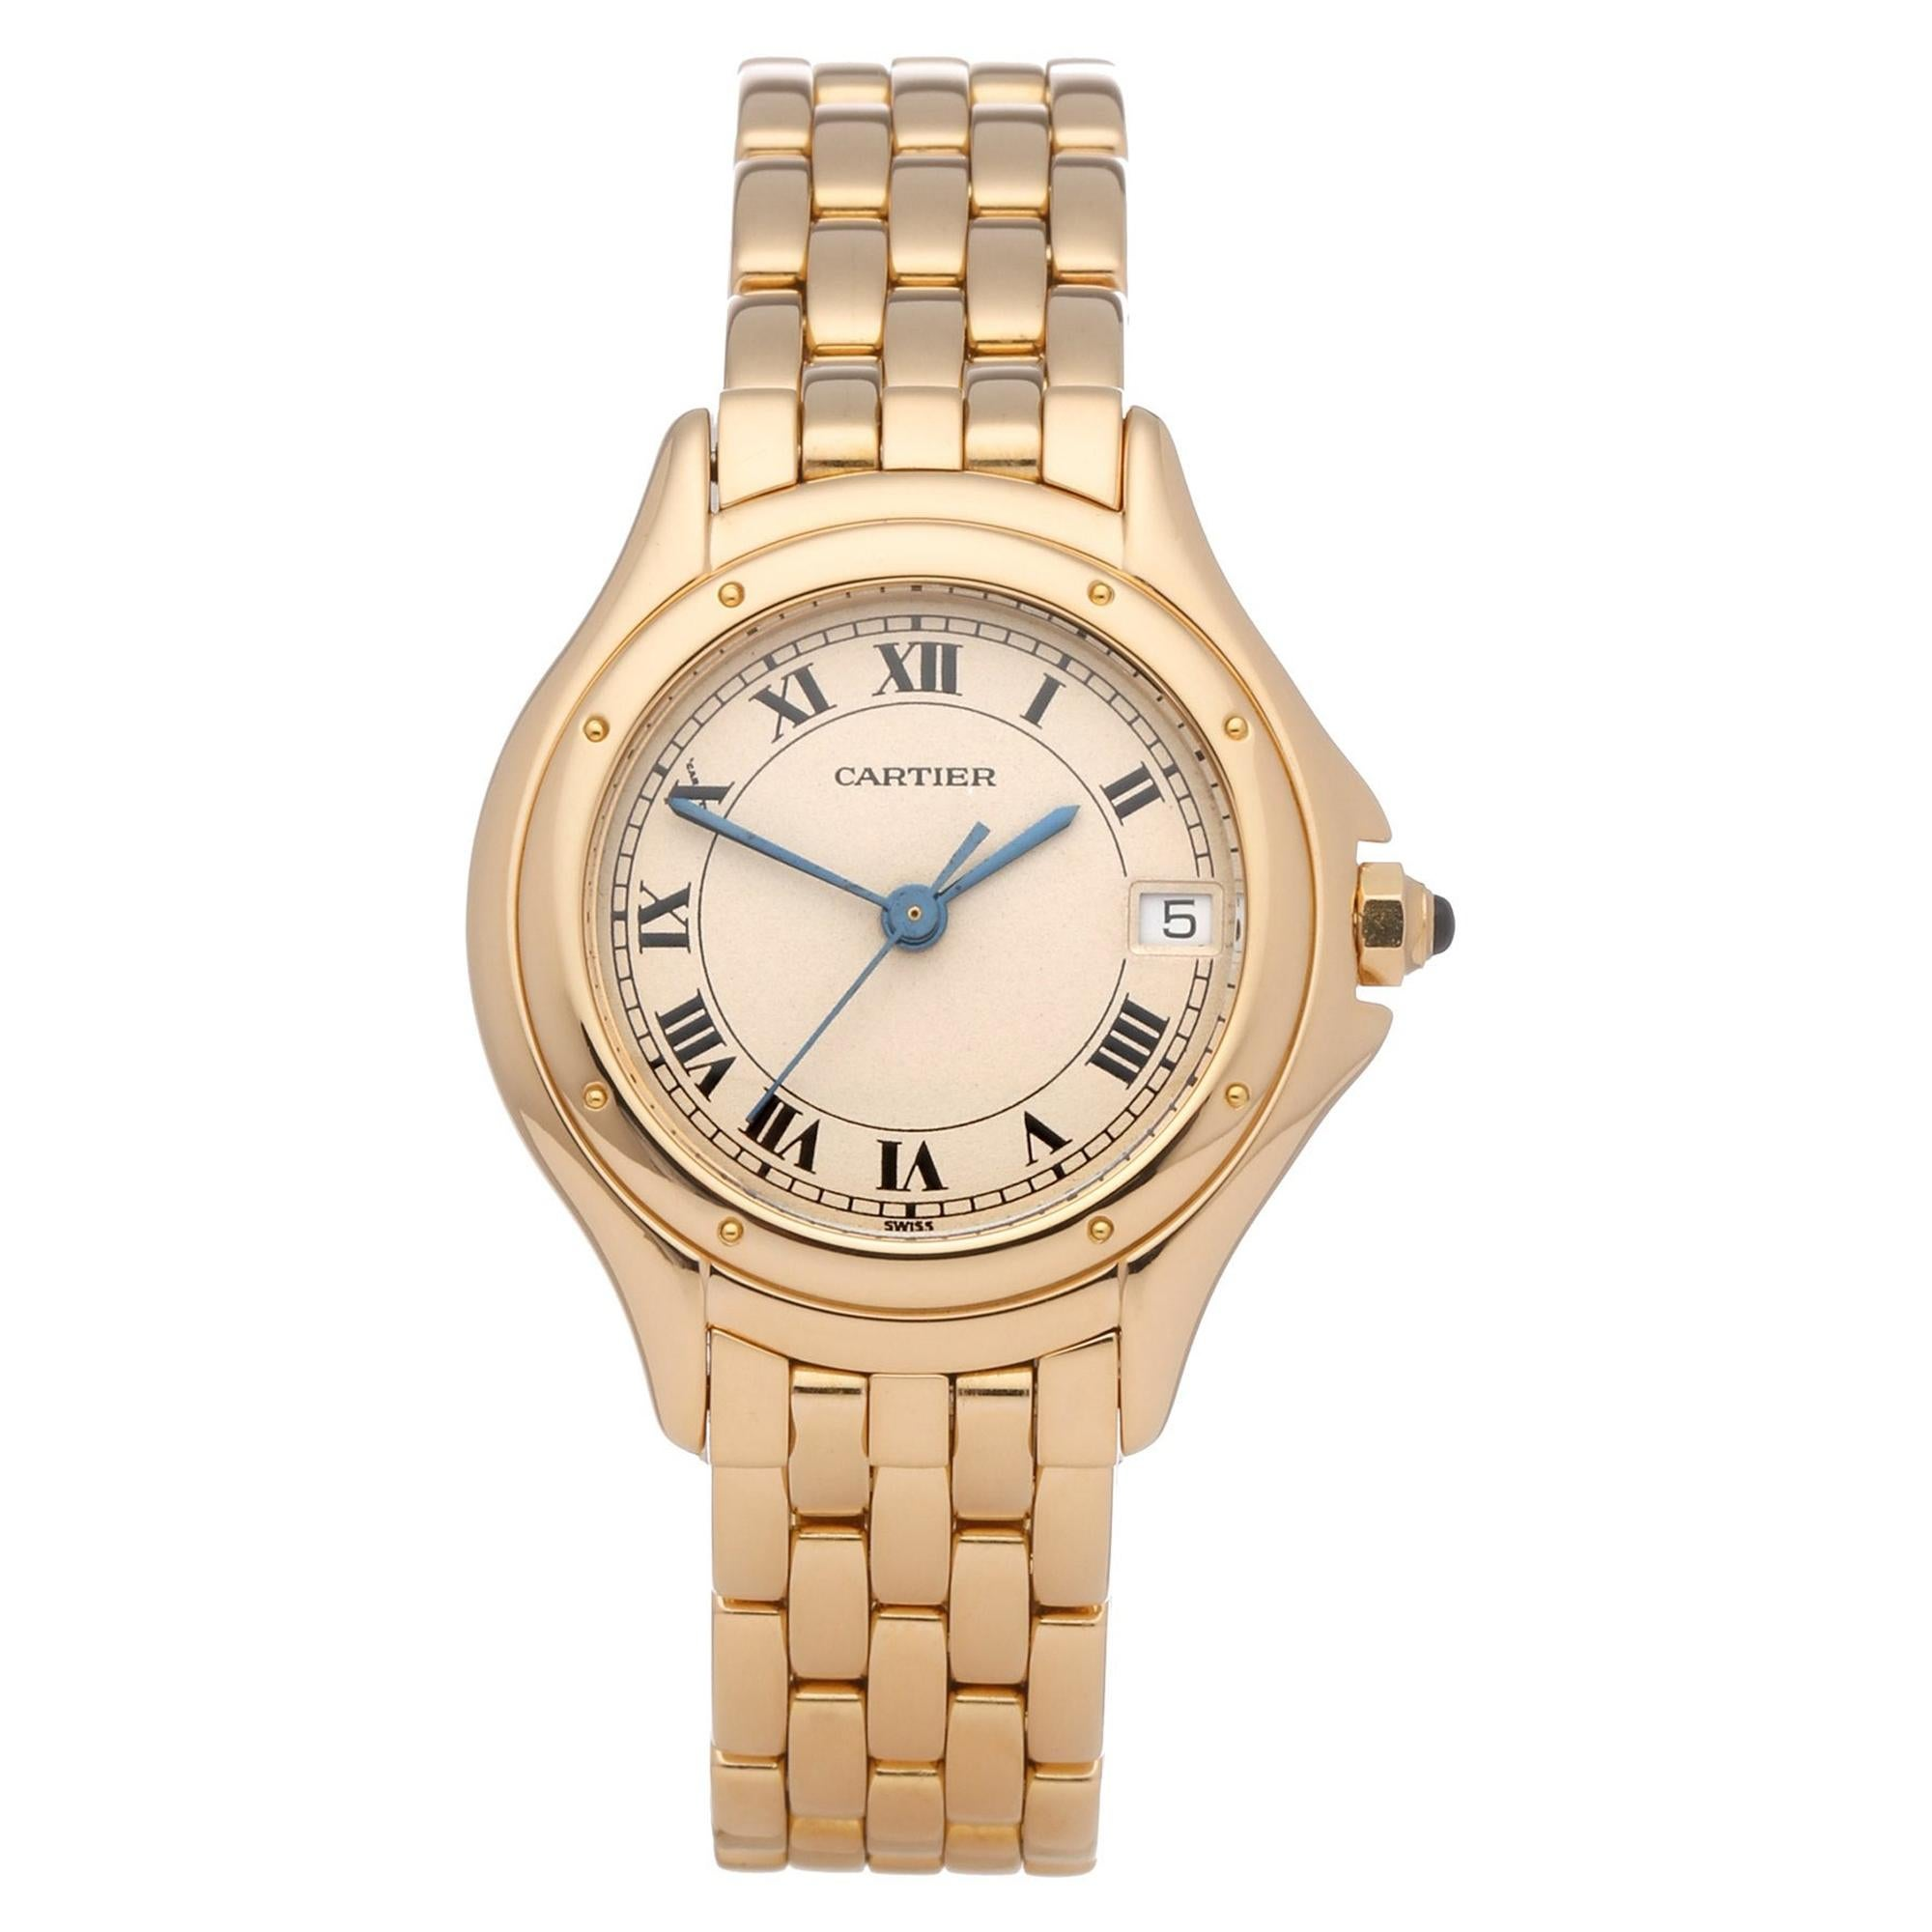 Cartier Panthere Cougar 0 887904 Men's Yellow Gold 0 Watch